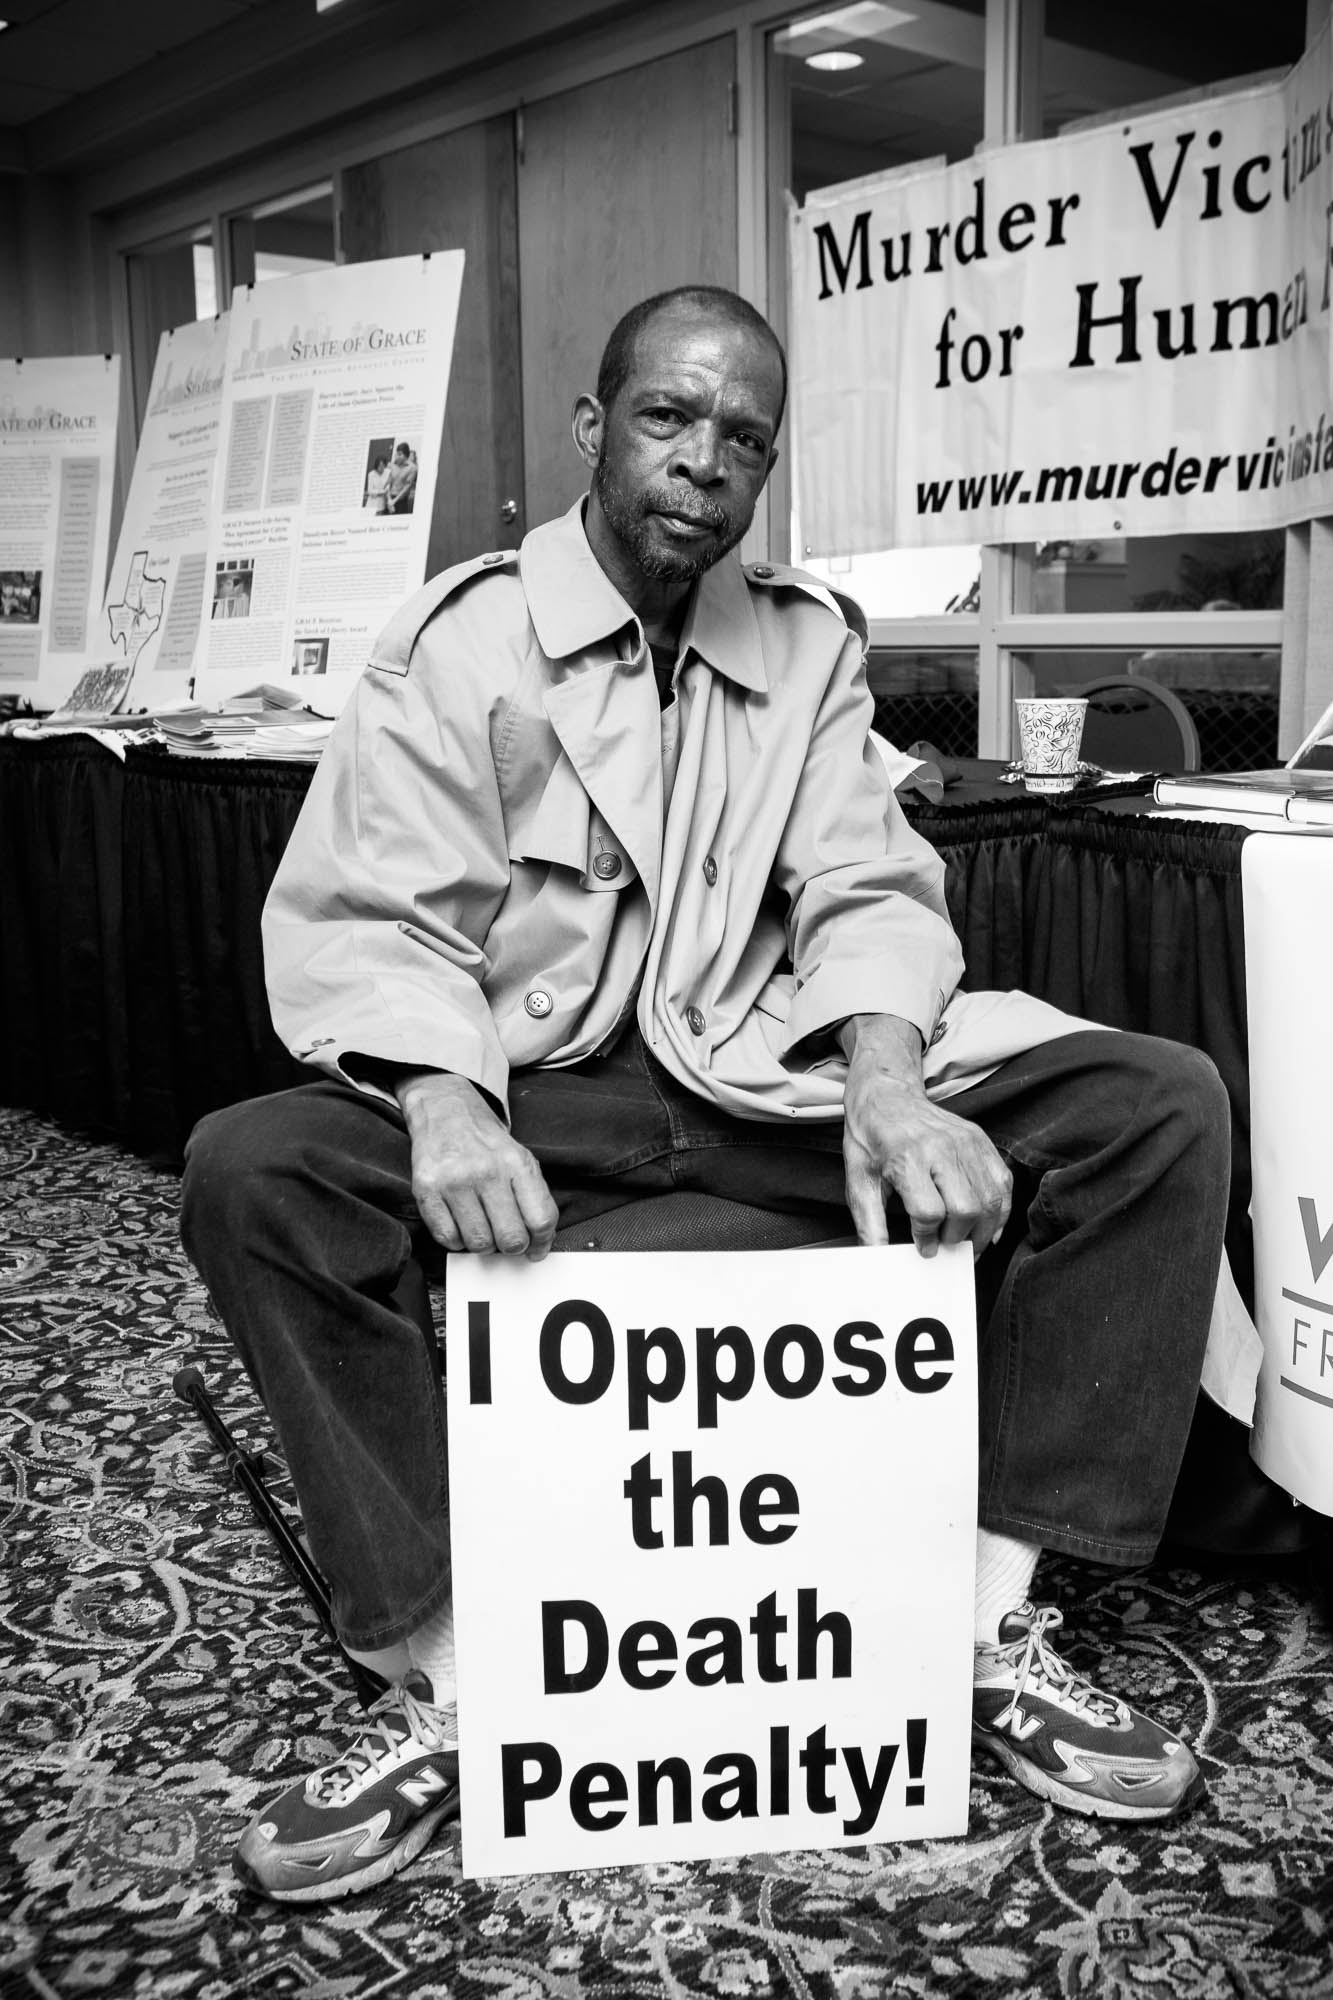 David Keaton - Florida - death row innocent, wrongful conviction, exonerated